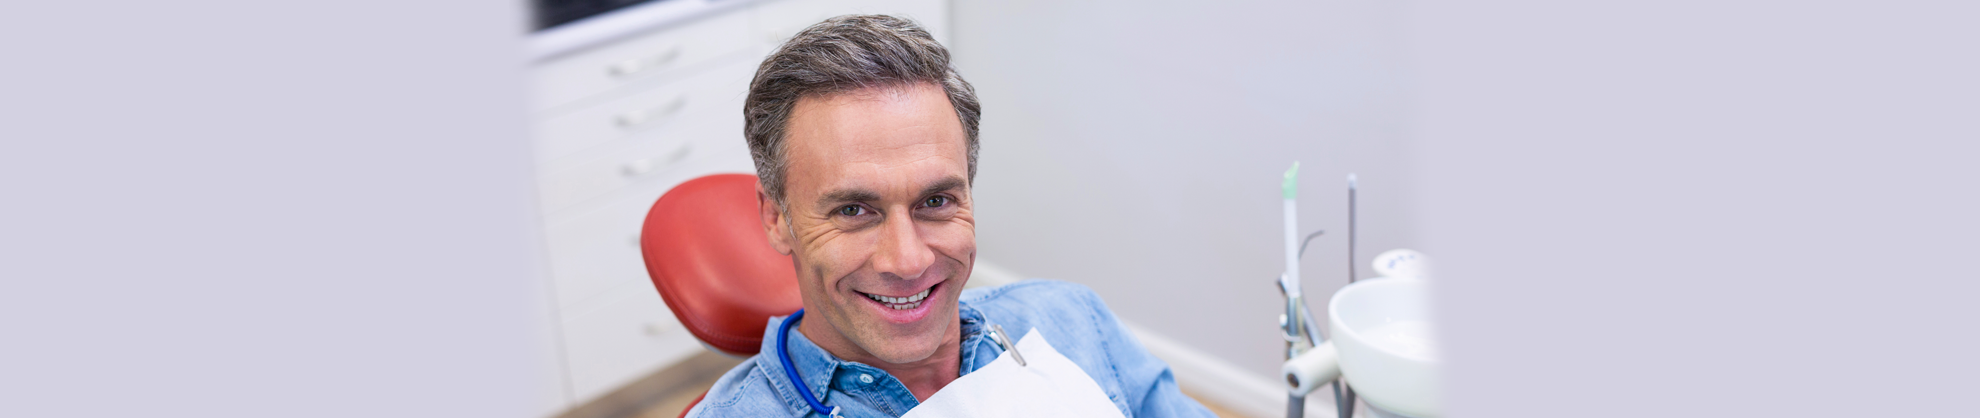 Dental Implants in Trumbull, Connecticut